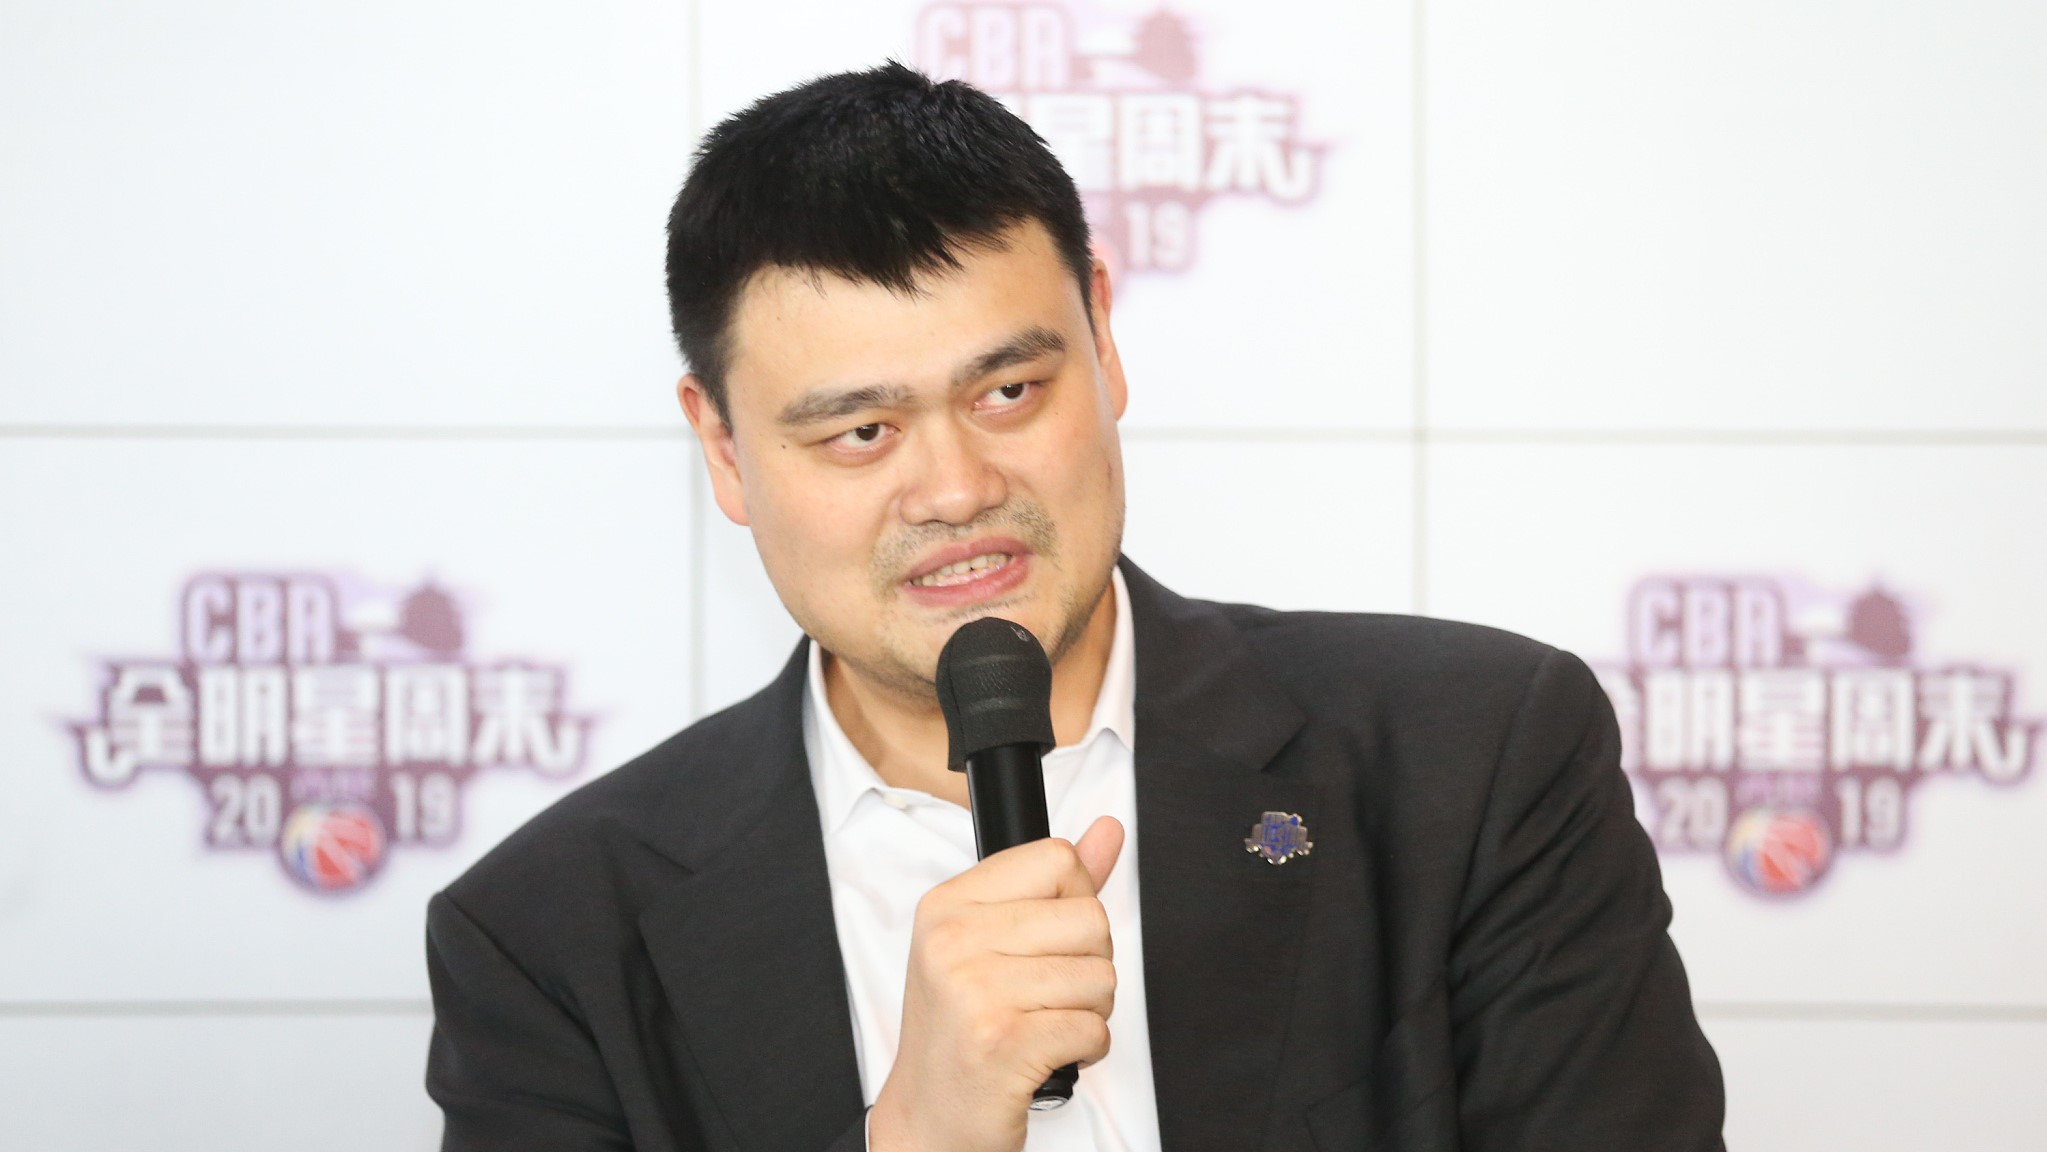 Yao Ming: Unregistered Zhou Qi cannot play in CBA this season